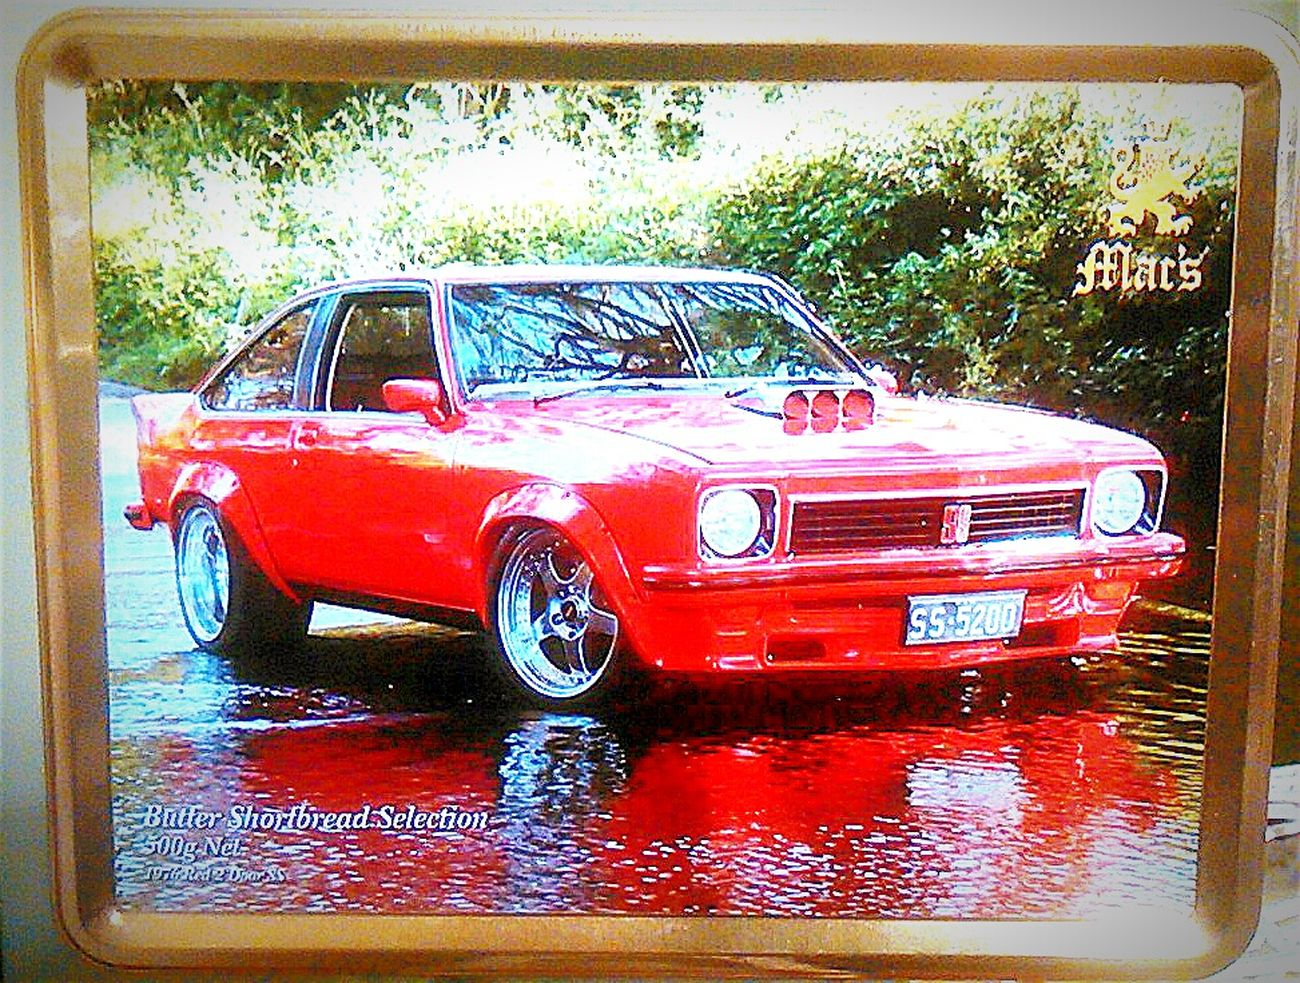 1976 Holden SS Torana Hatchback Supercharger General Motors Holden Cars Red Car Fast Car Tin Collection Holden Torana Torana GMH Car Porn Car Carporn Fast Cars Red Blower Supercharged